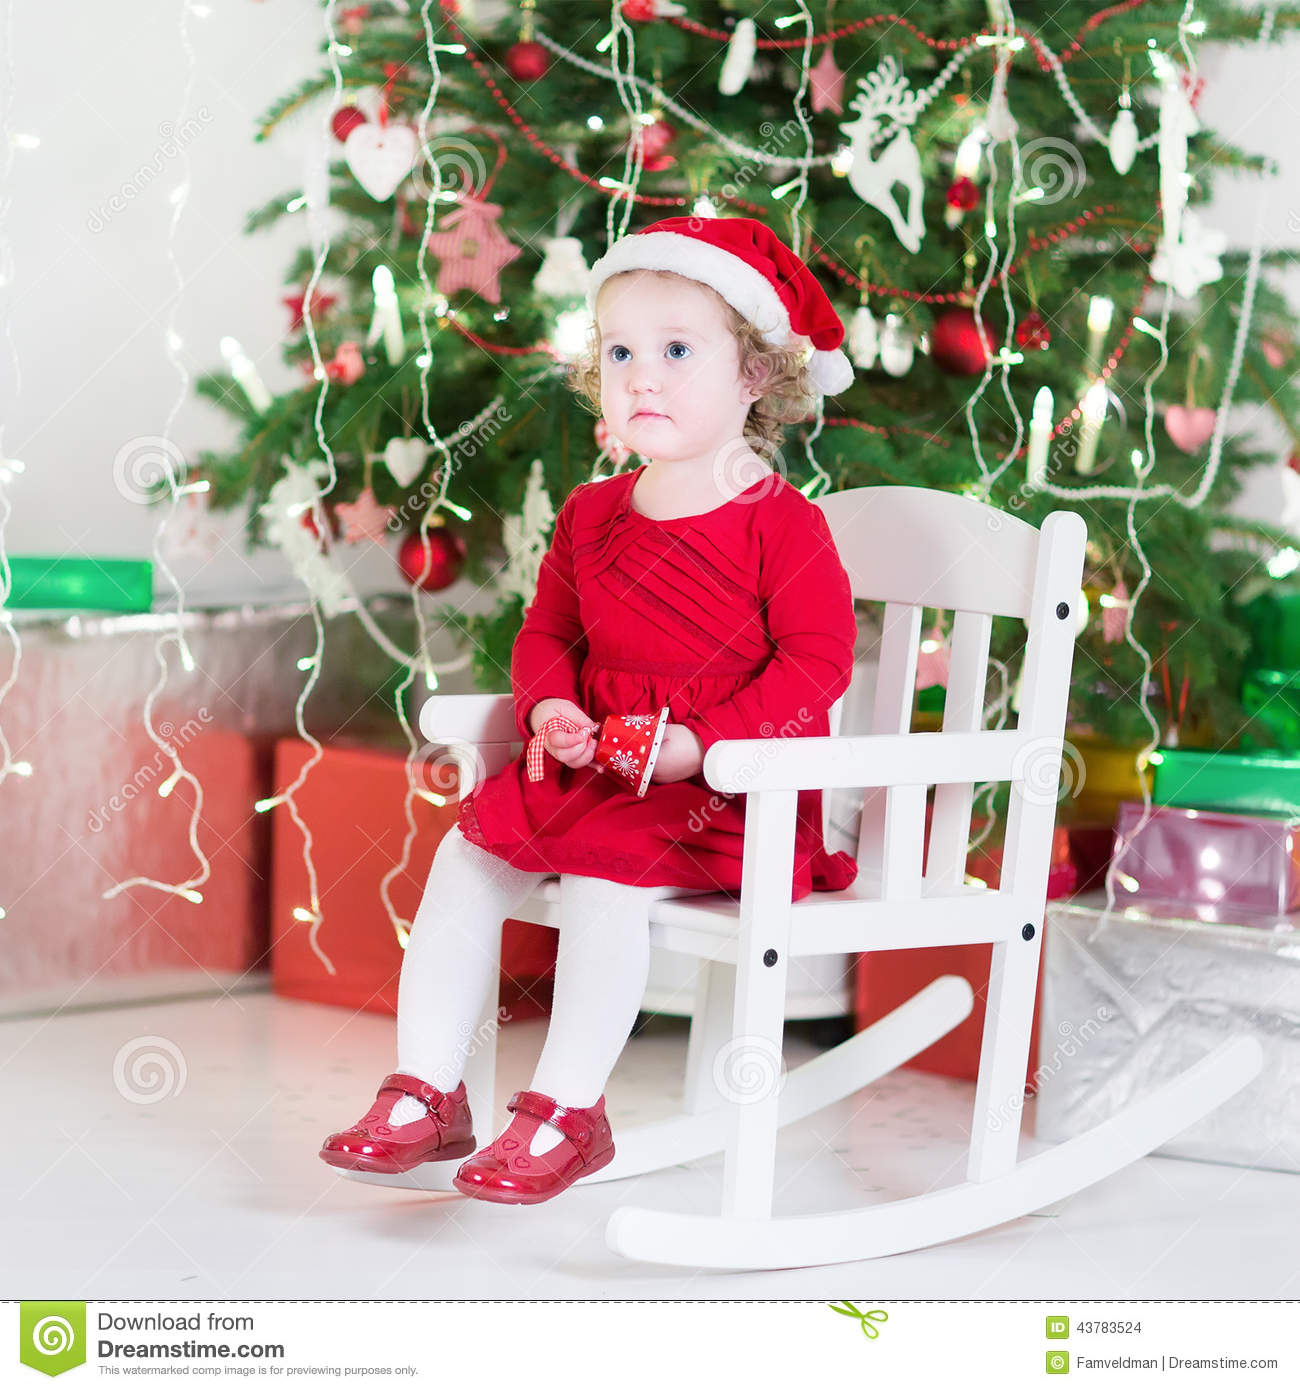 Little Girl Christmas Tree: Cute Toddler Girl In Red Dress And Santa Hat Near